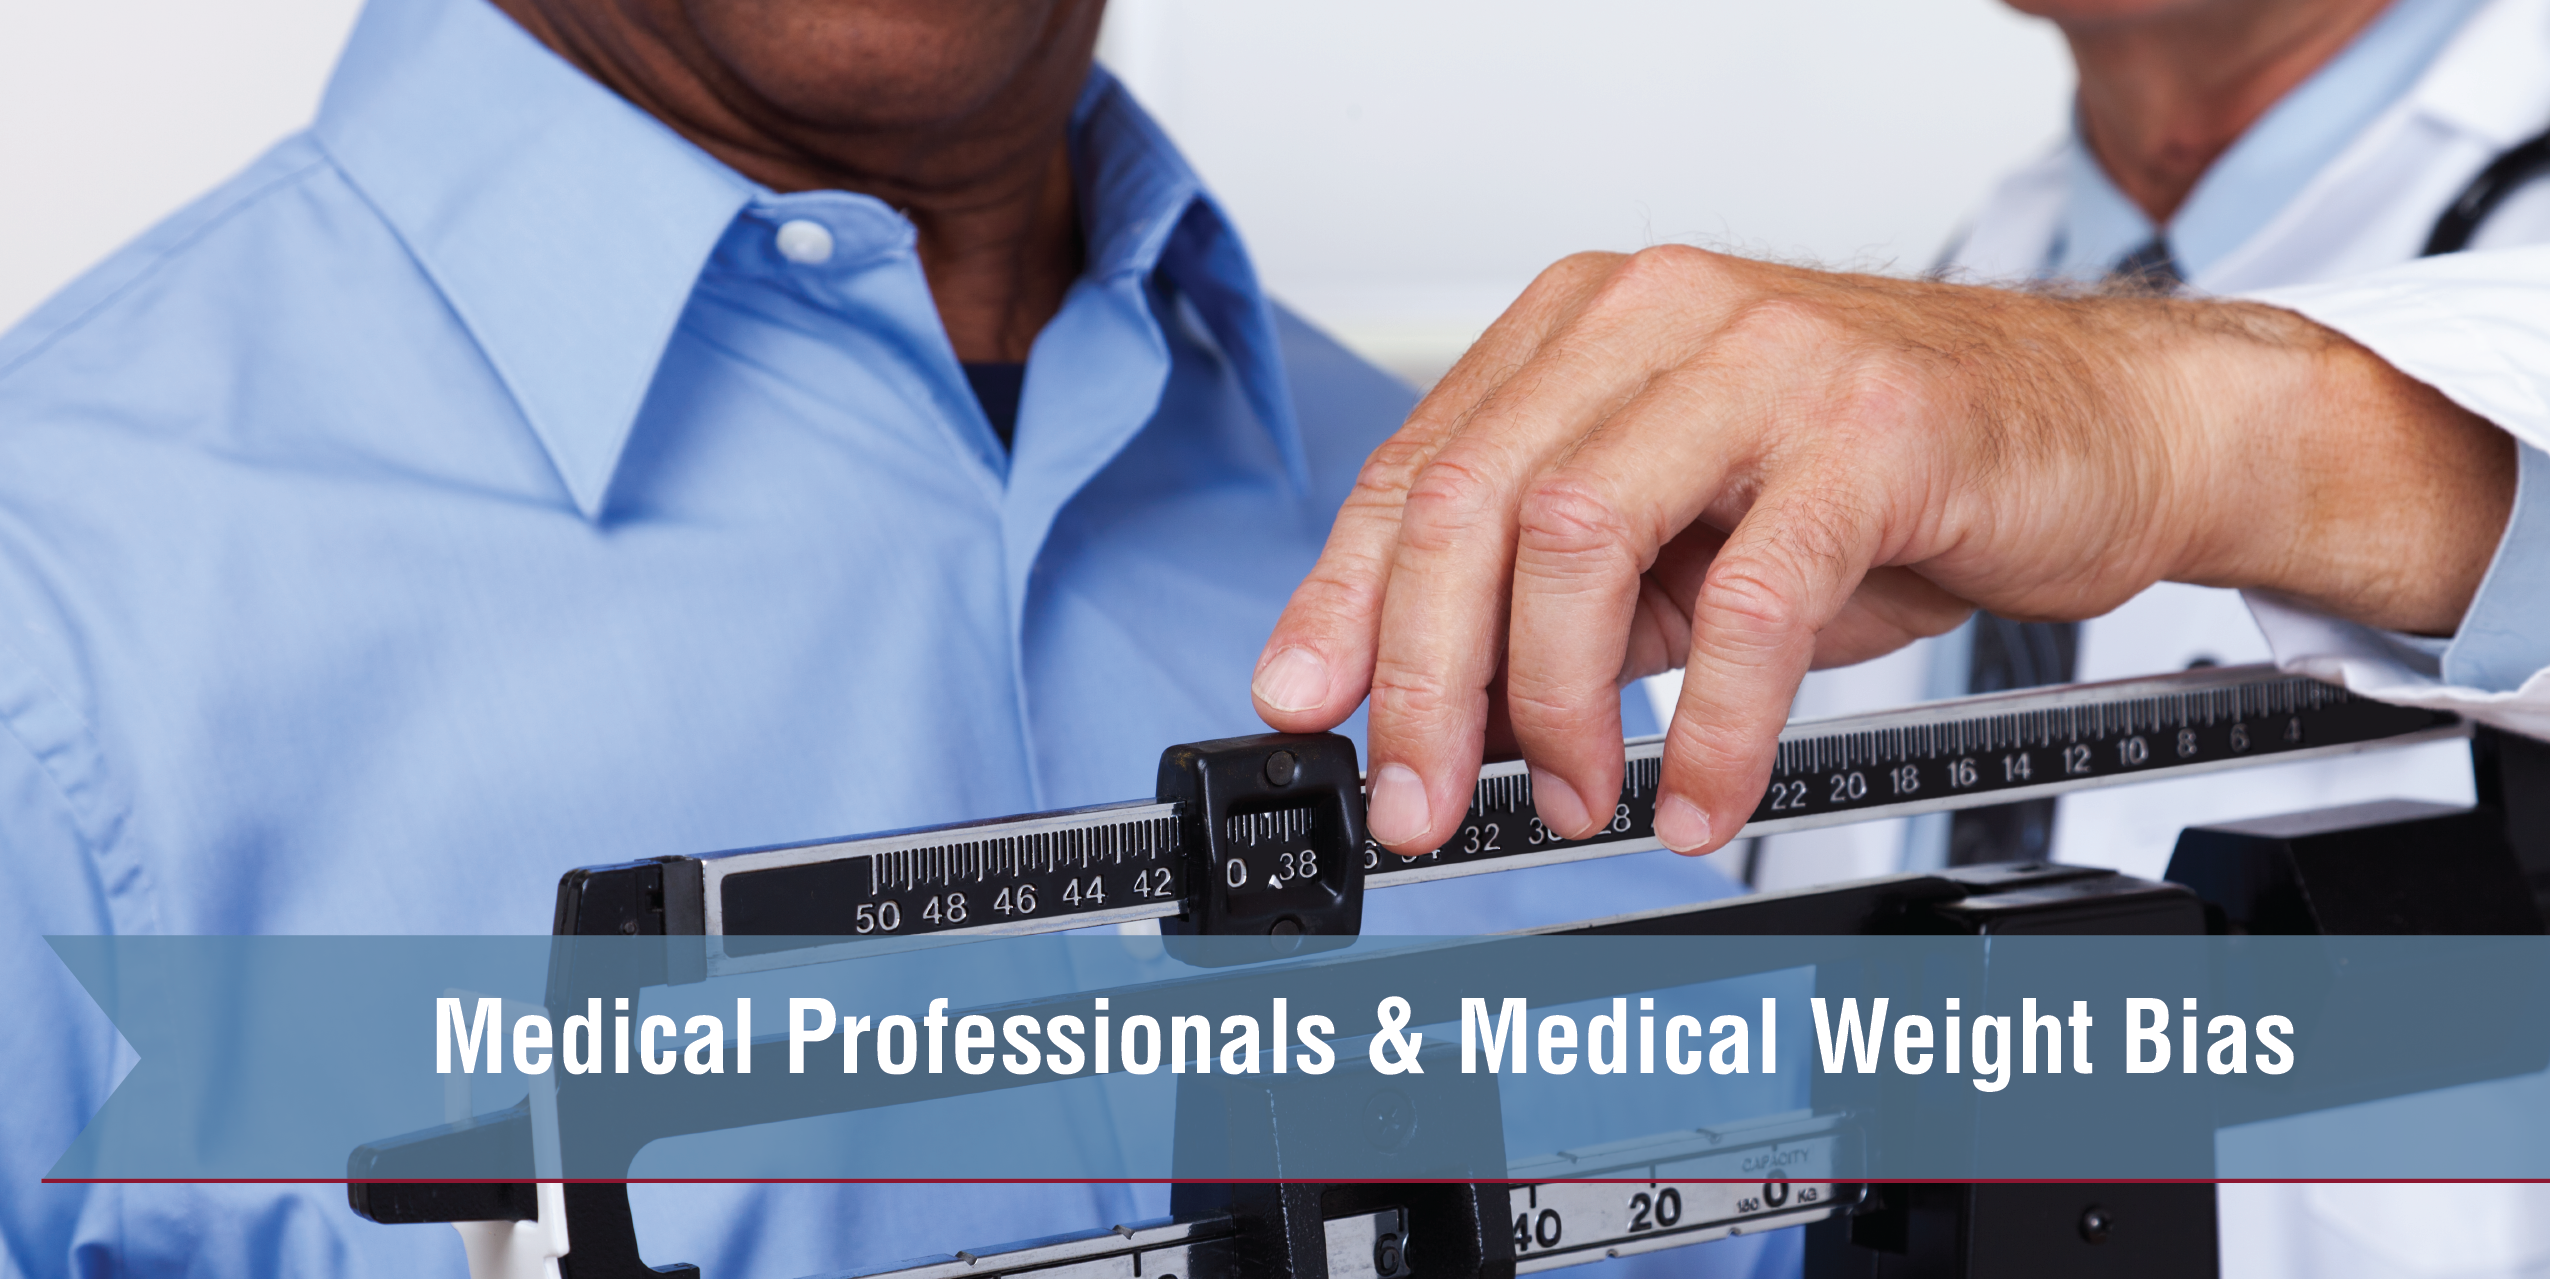 Medical Professionals & Medical Weight Bias